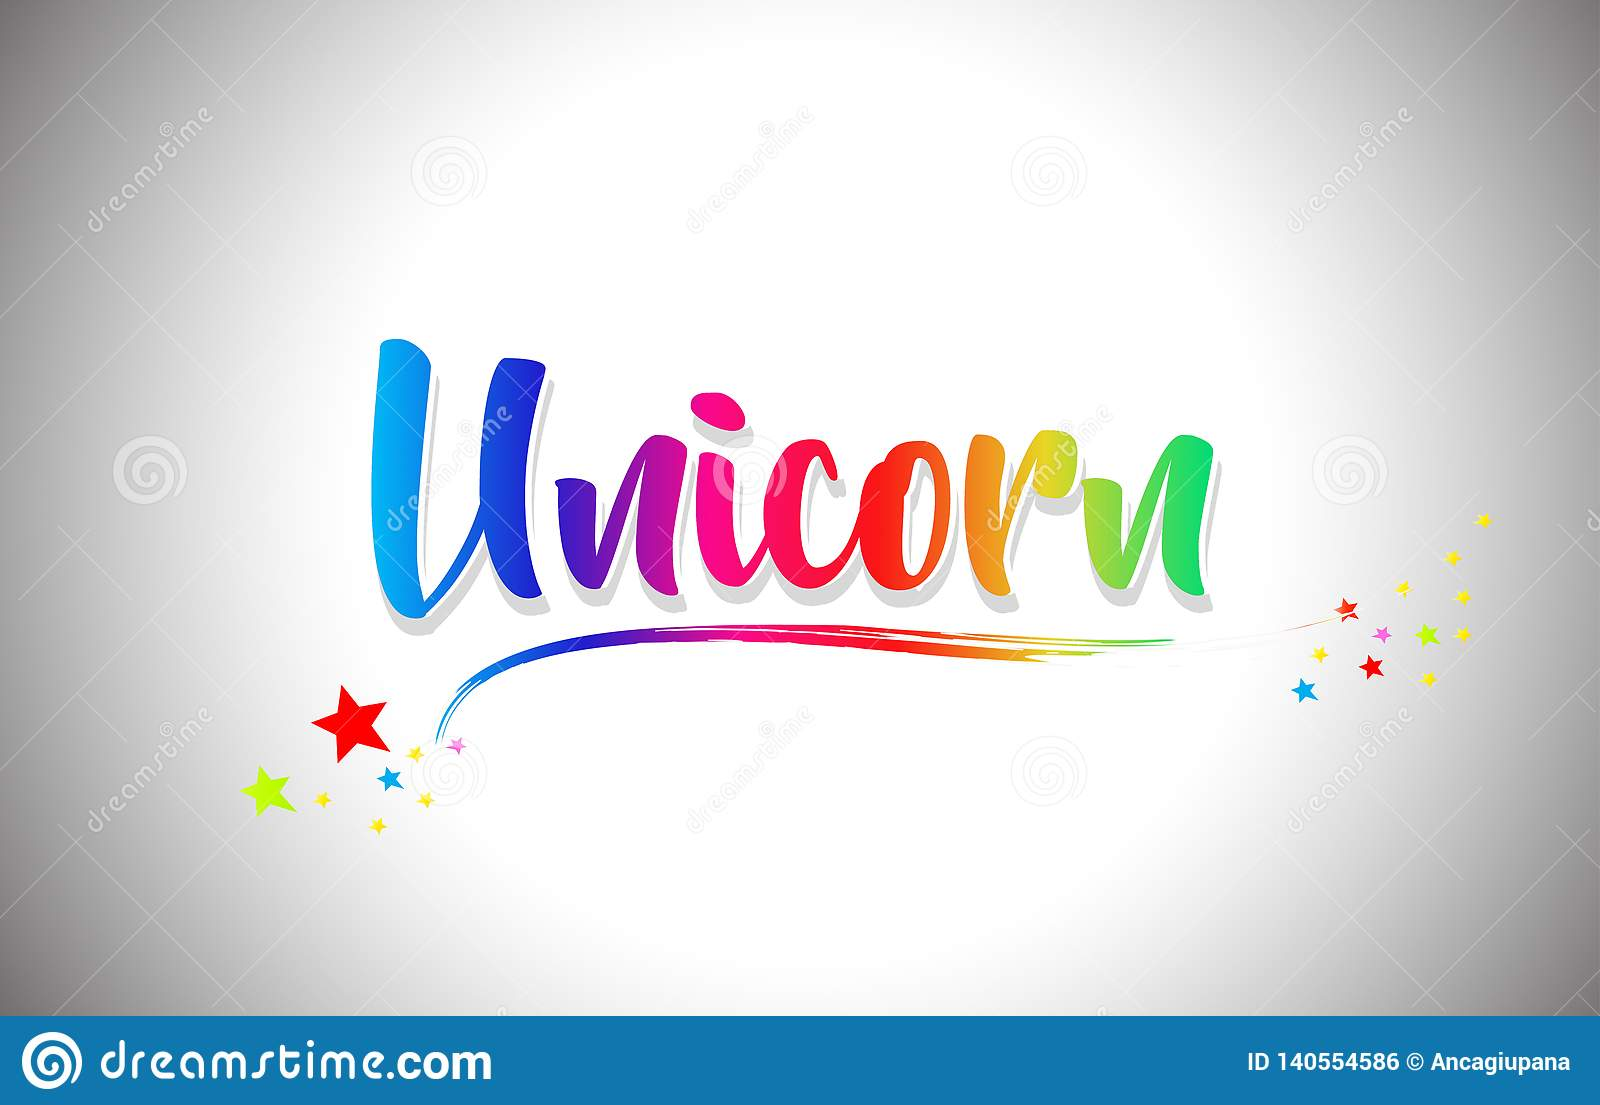 Unicorn Handwritten Word Text With Rainbow Colors And